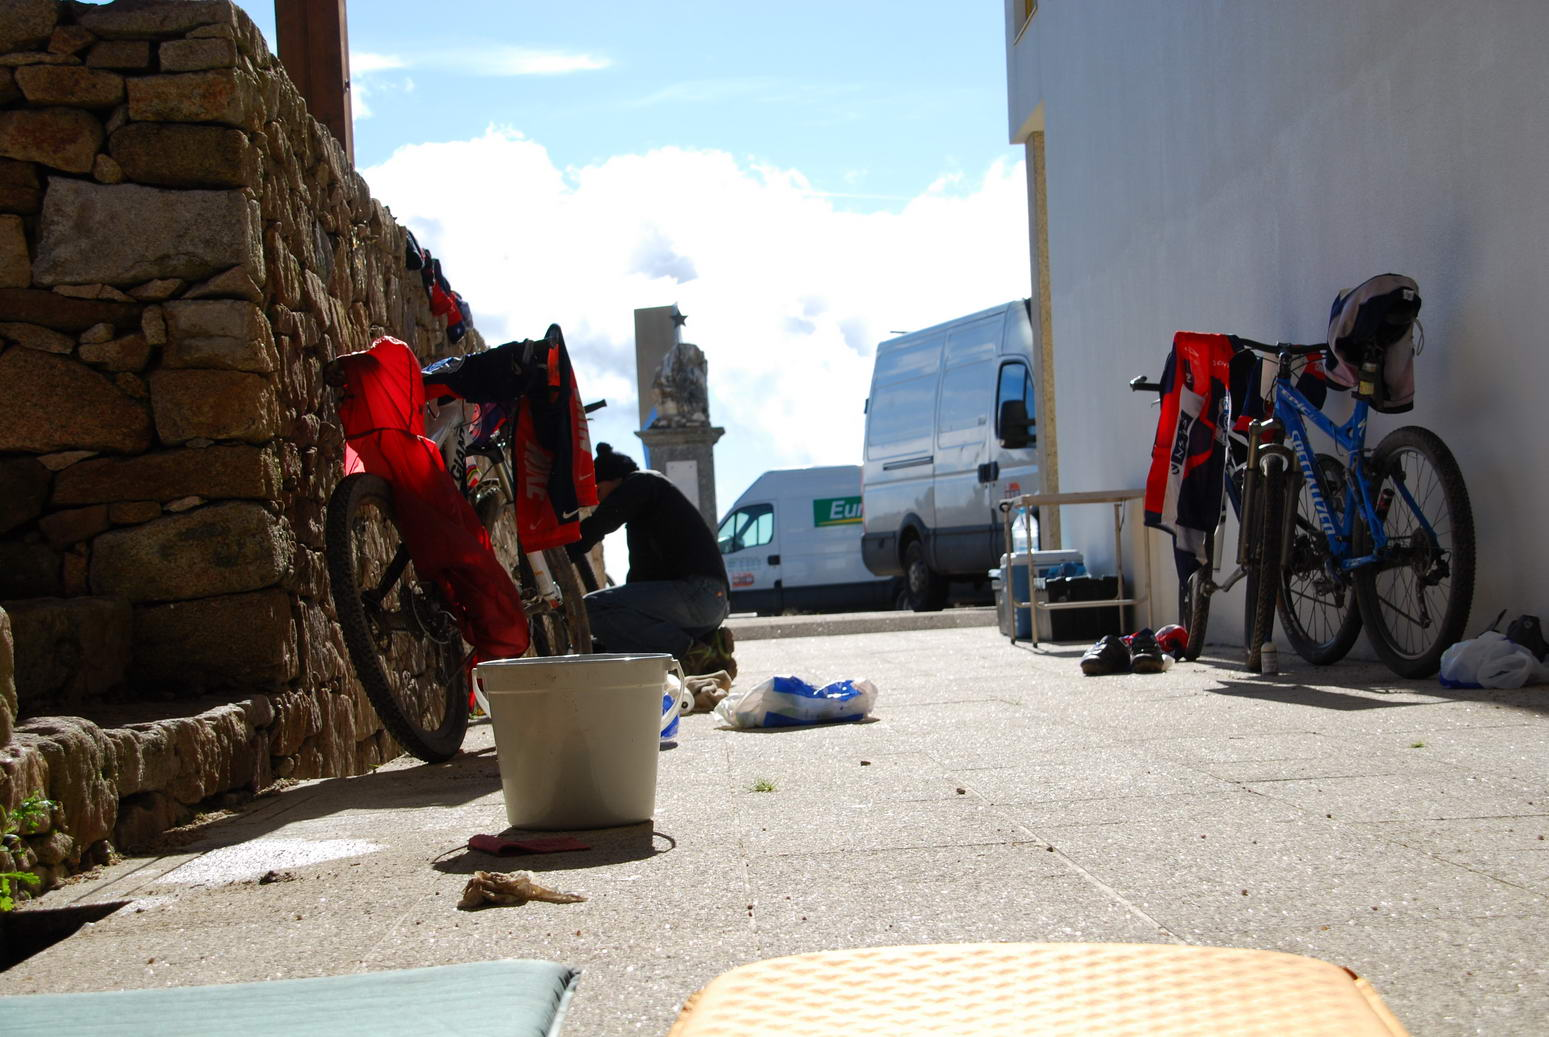 Cleaning bikes (Portugal ARWC 2009)